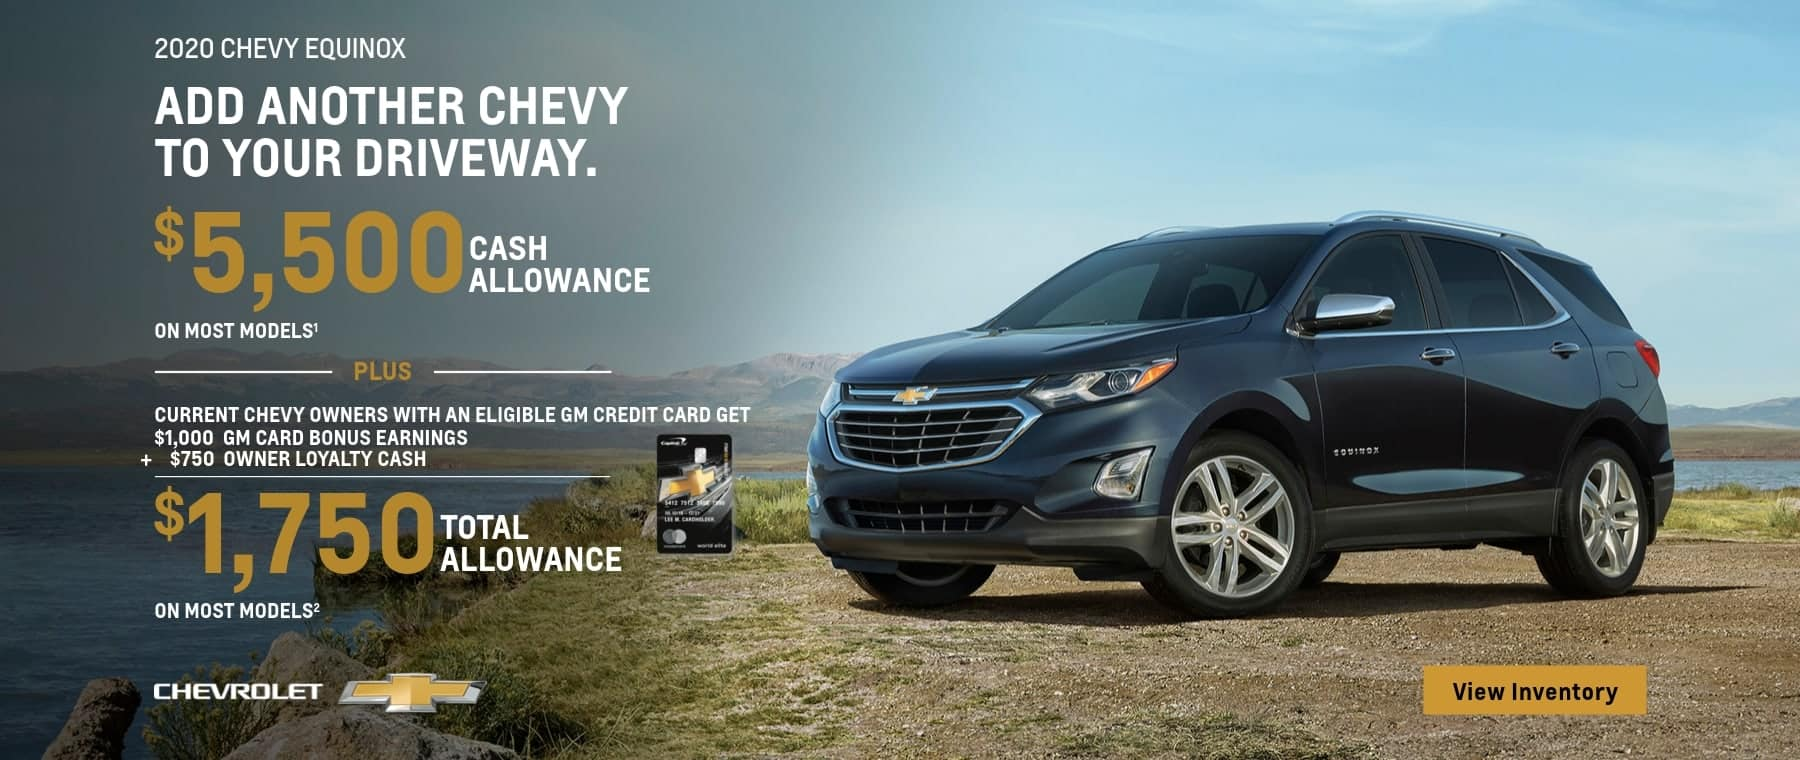 2020 Chevy Equinox $5,500 Cash Allowance on most models plus current Chevy owners with an eligible GM Card get $1,000 GM Card bonus earnings plus $750 owner loyalty cash. That's $,750 total cash allowance on most models.